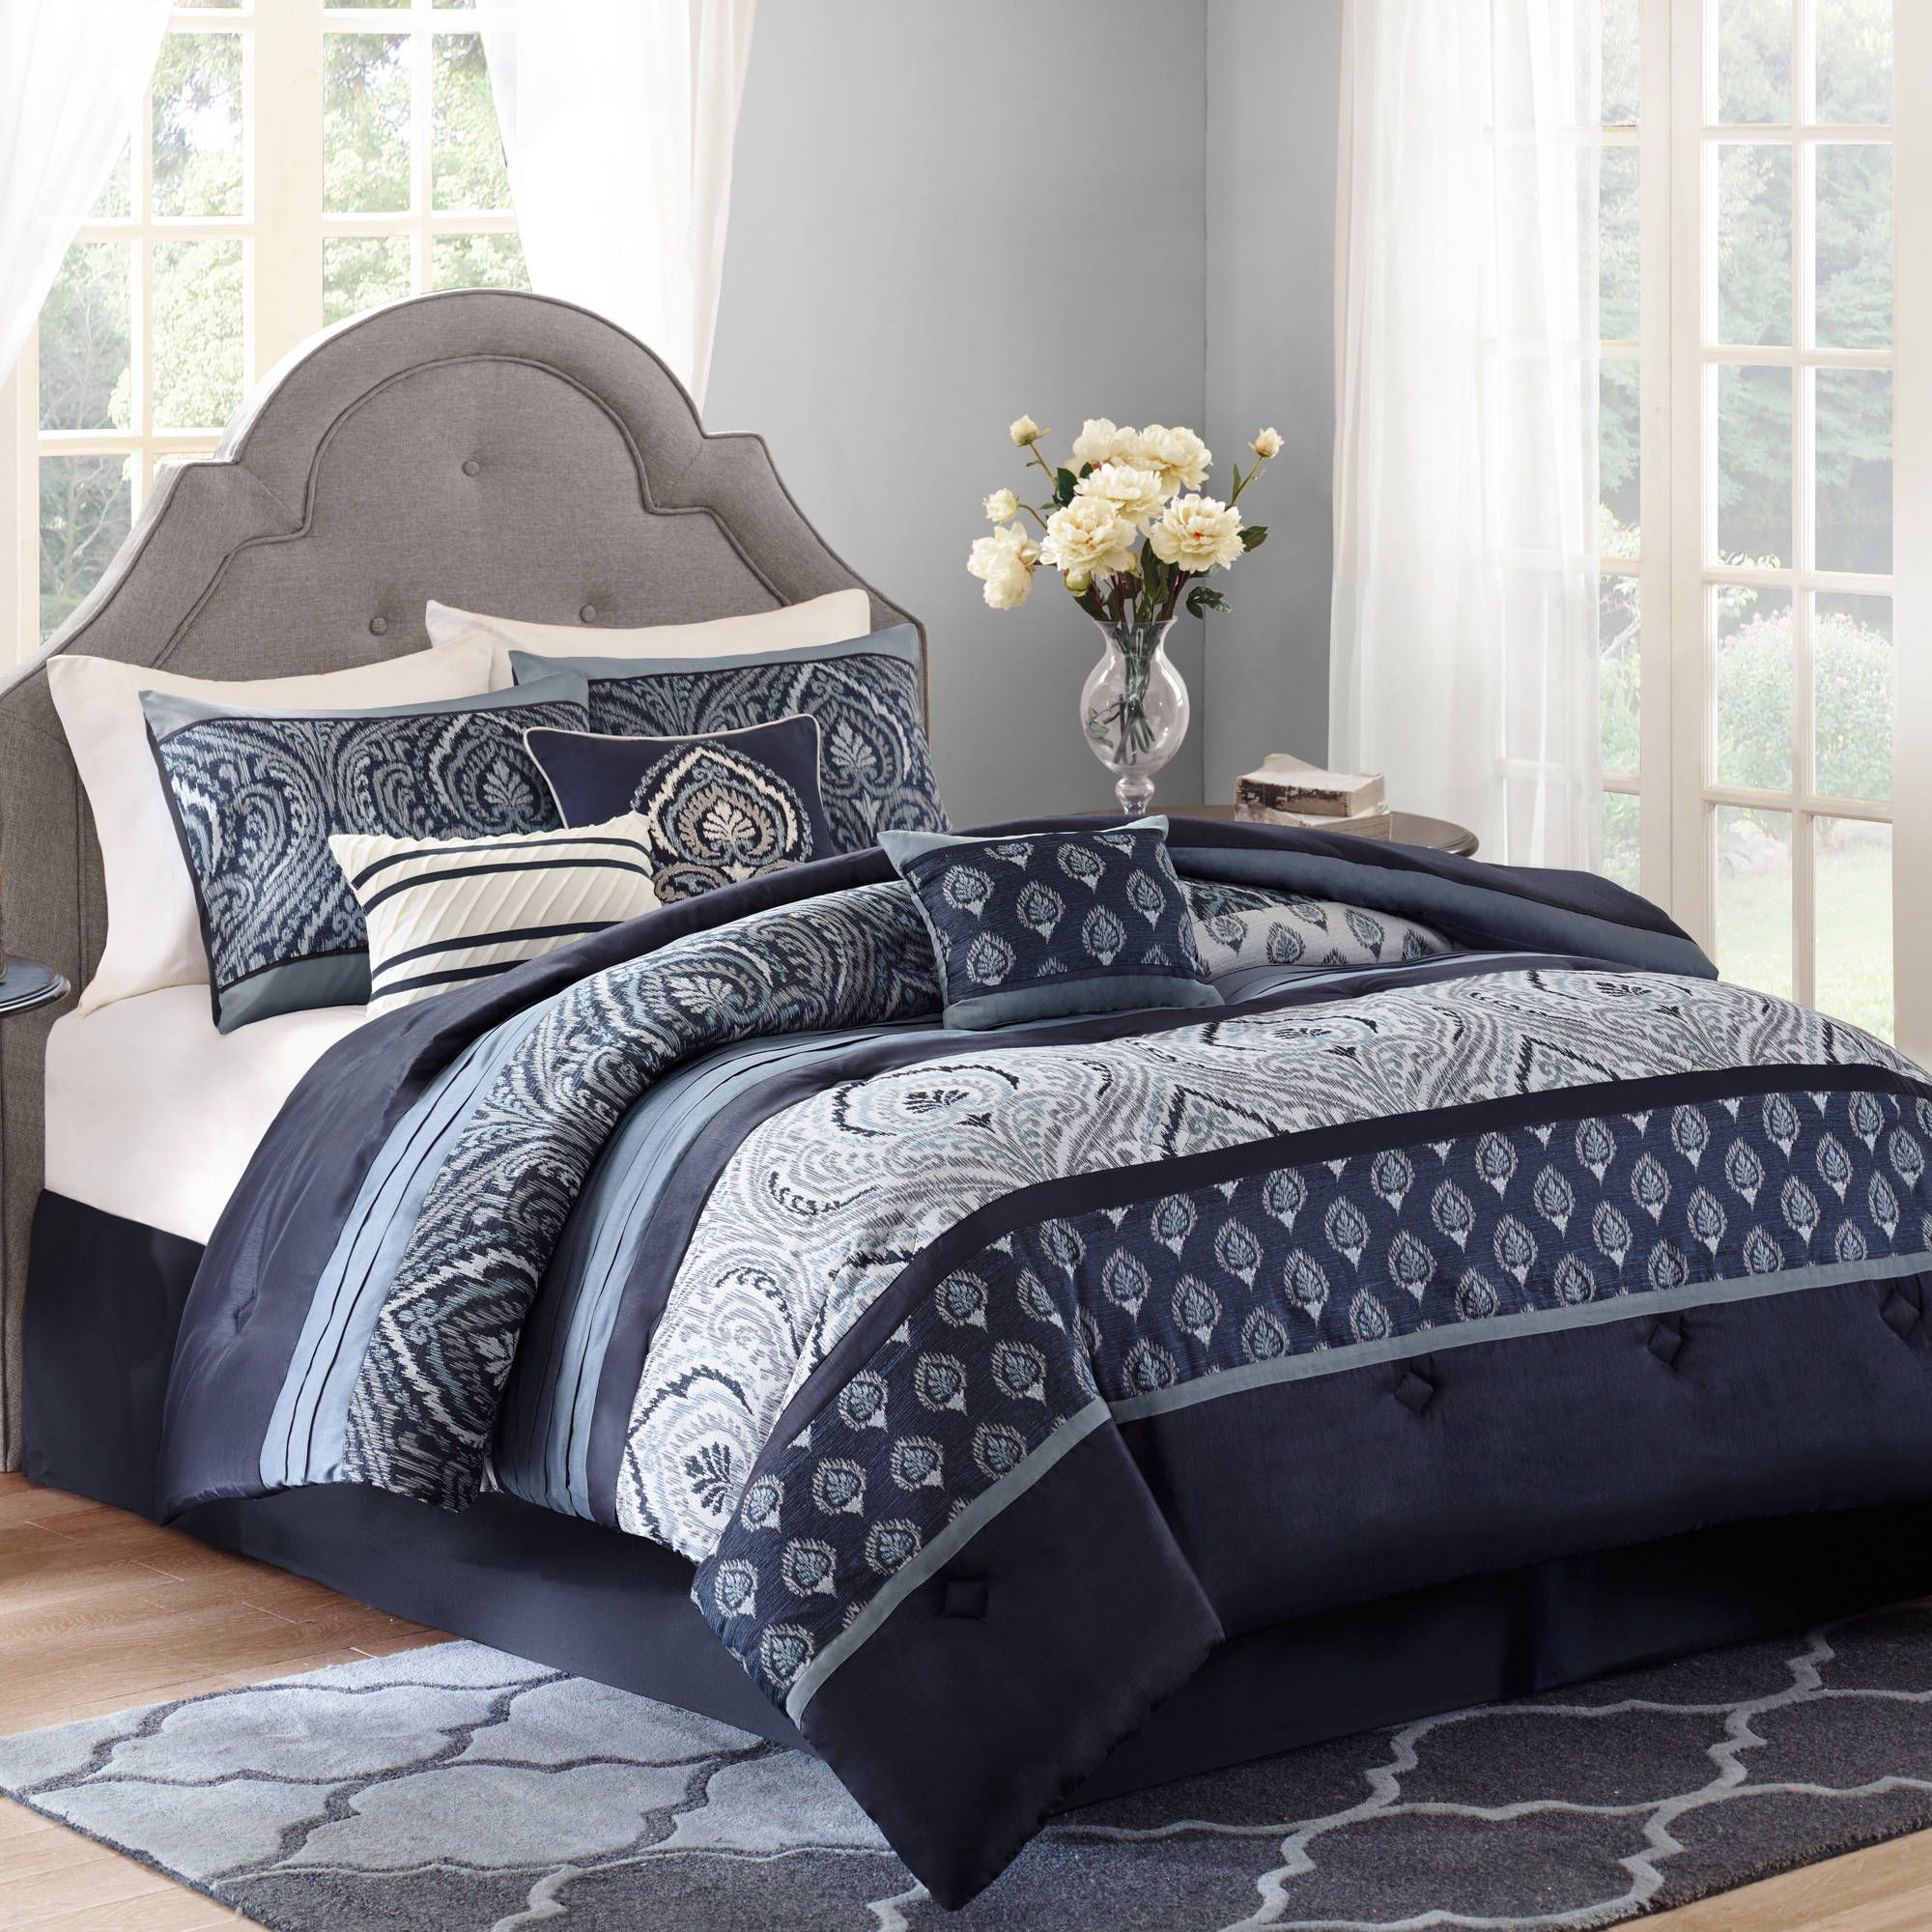 Better Homes Gardens Indigo Paisley 7 Piece Bedding Comforter Set Full/Queen  By BHG